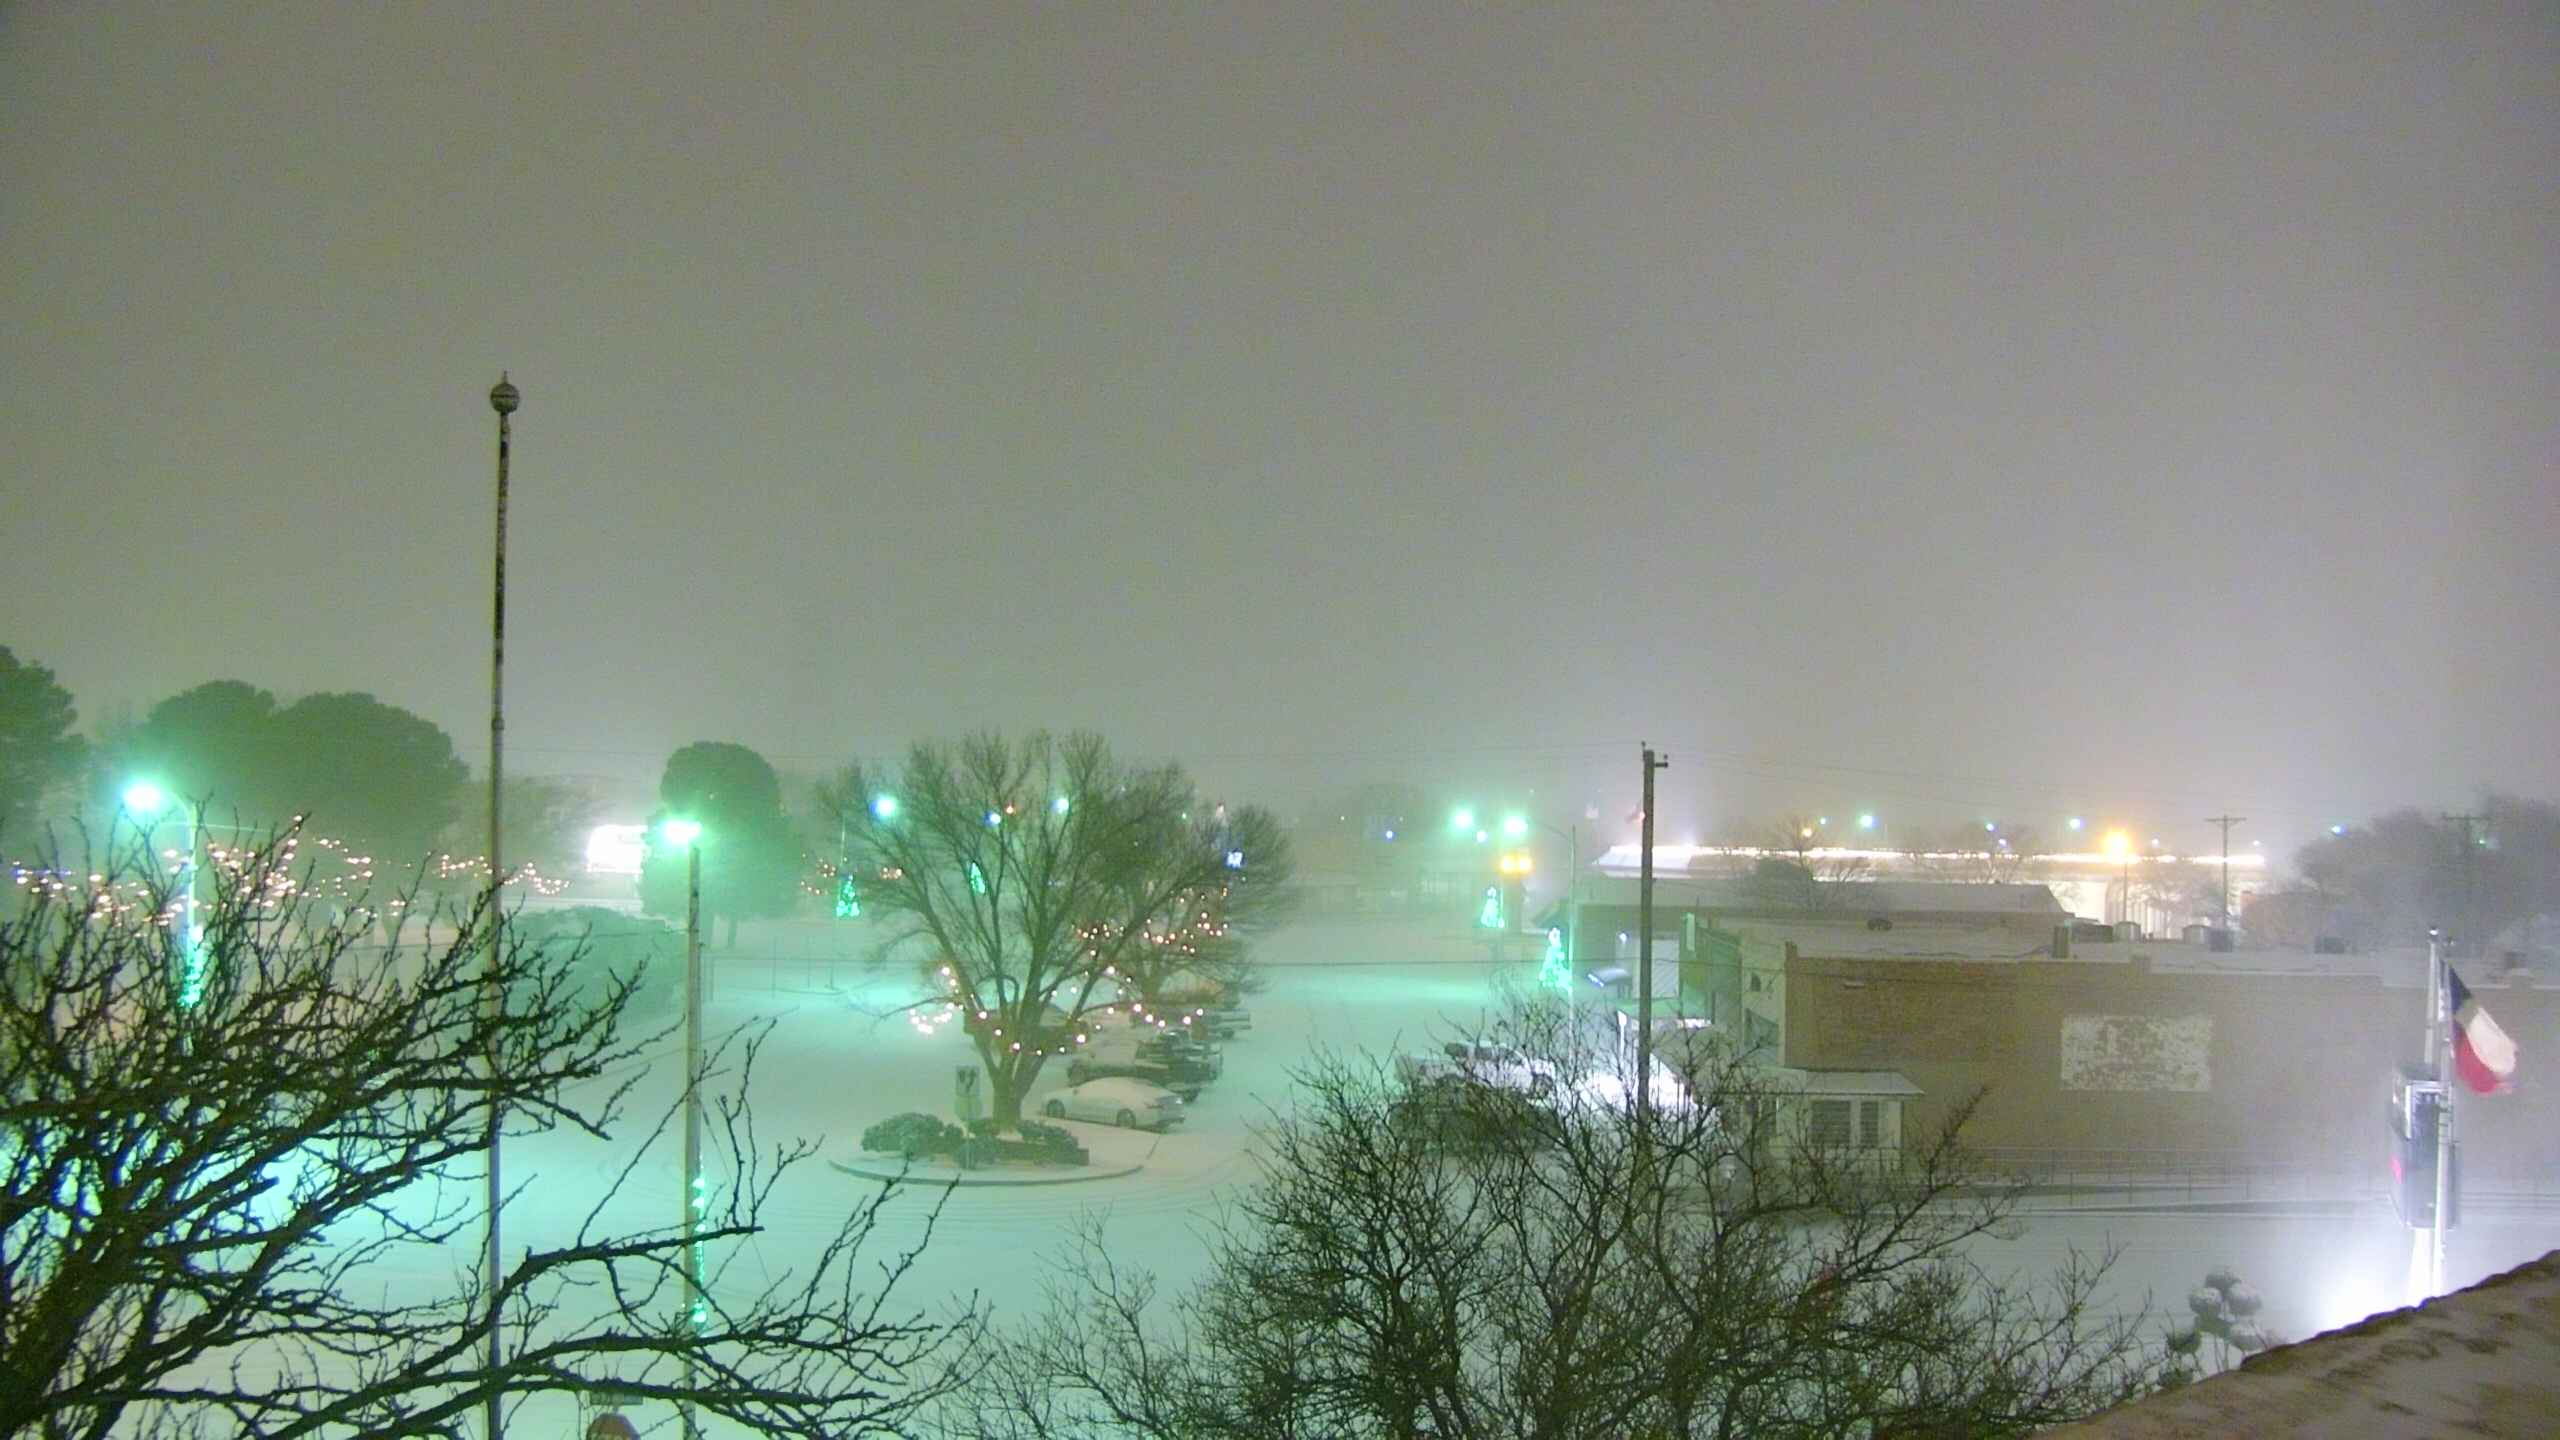 Picture taken Thursday evening (31 December 2020) from Slaton. The image is courtesy of KAMC.